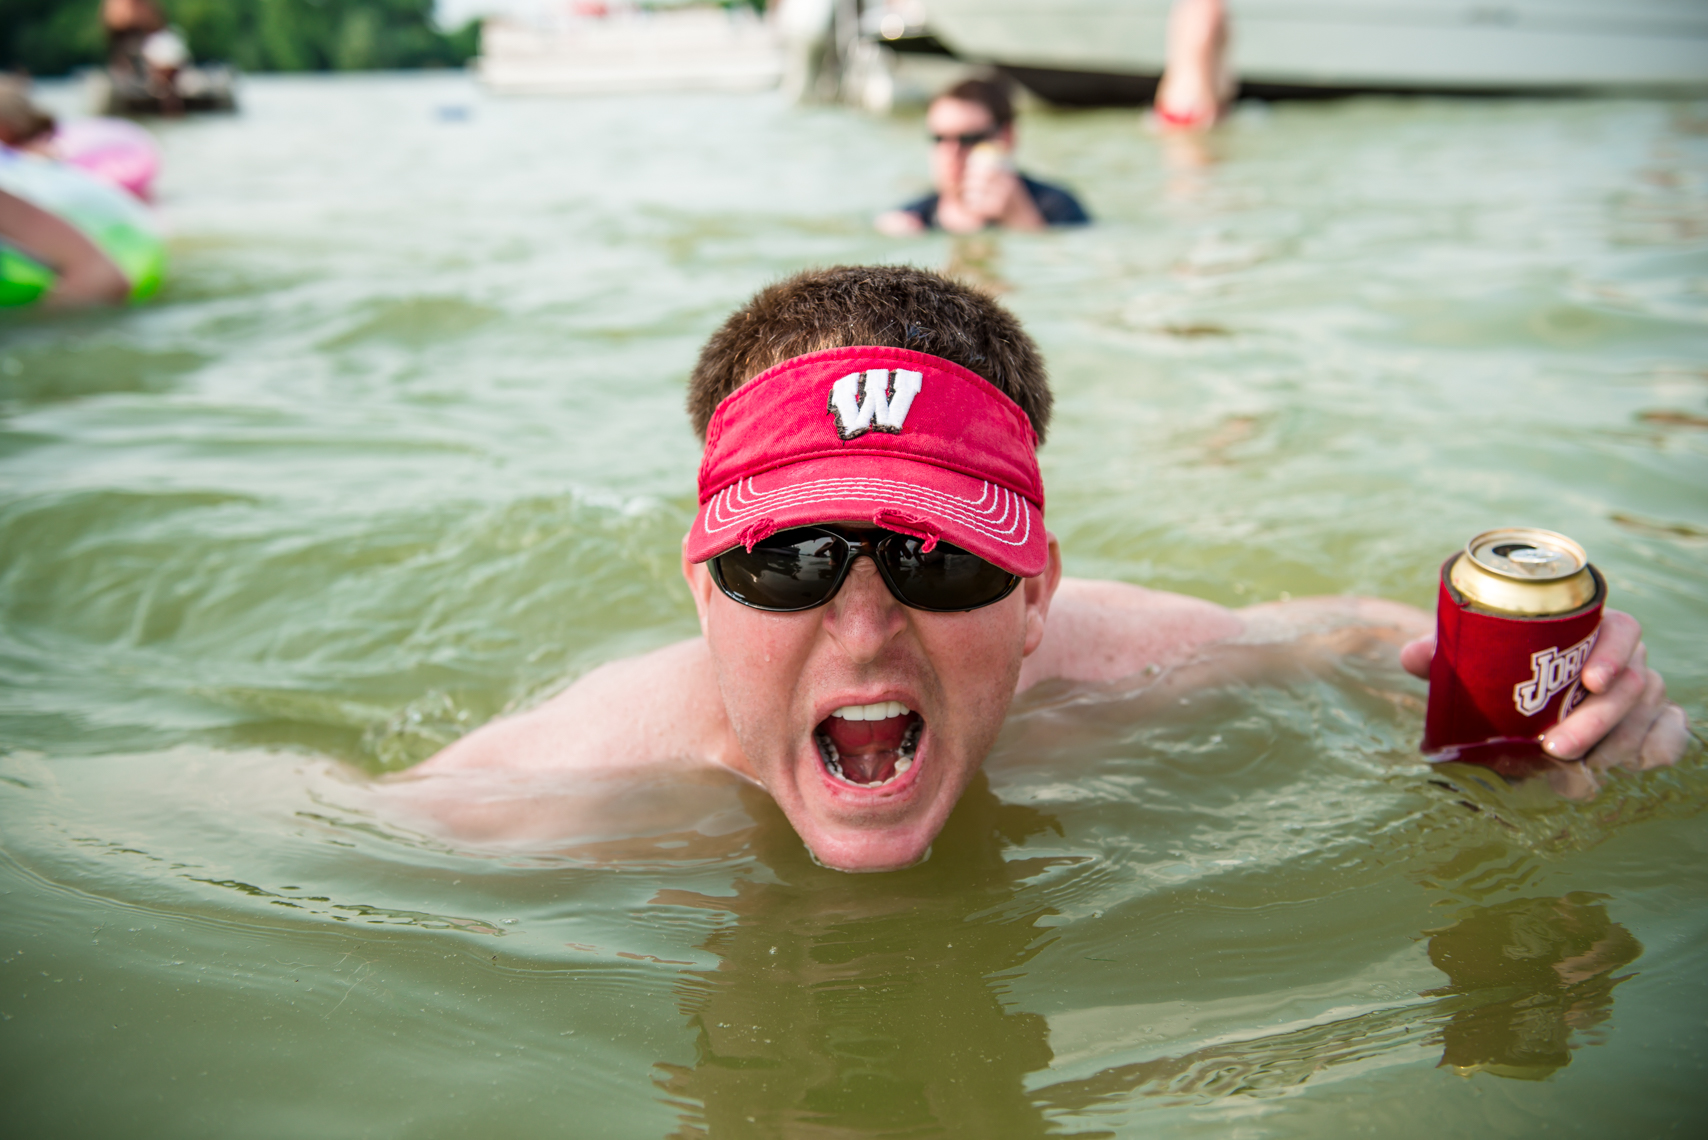 Wisconsin Badgers fan with his beer, funny, goofy, real people, reportage, lake party, summer fun, beverage, swimming, swim, suit, bathing, confident, summer fun, liquor, travel, Madison, Chicago, Nashville advertising, beverage, lifestyle